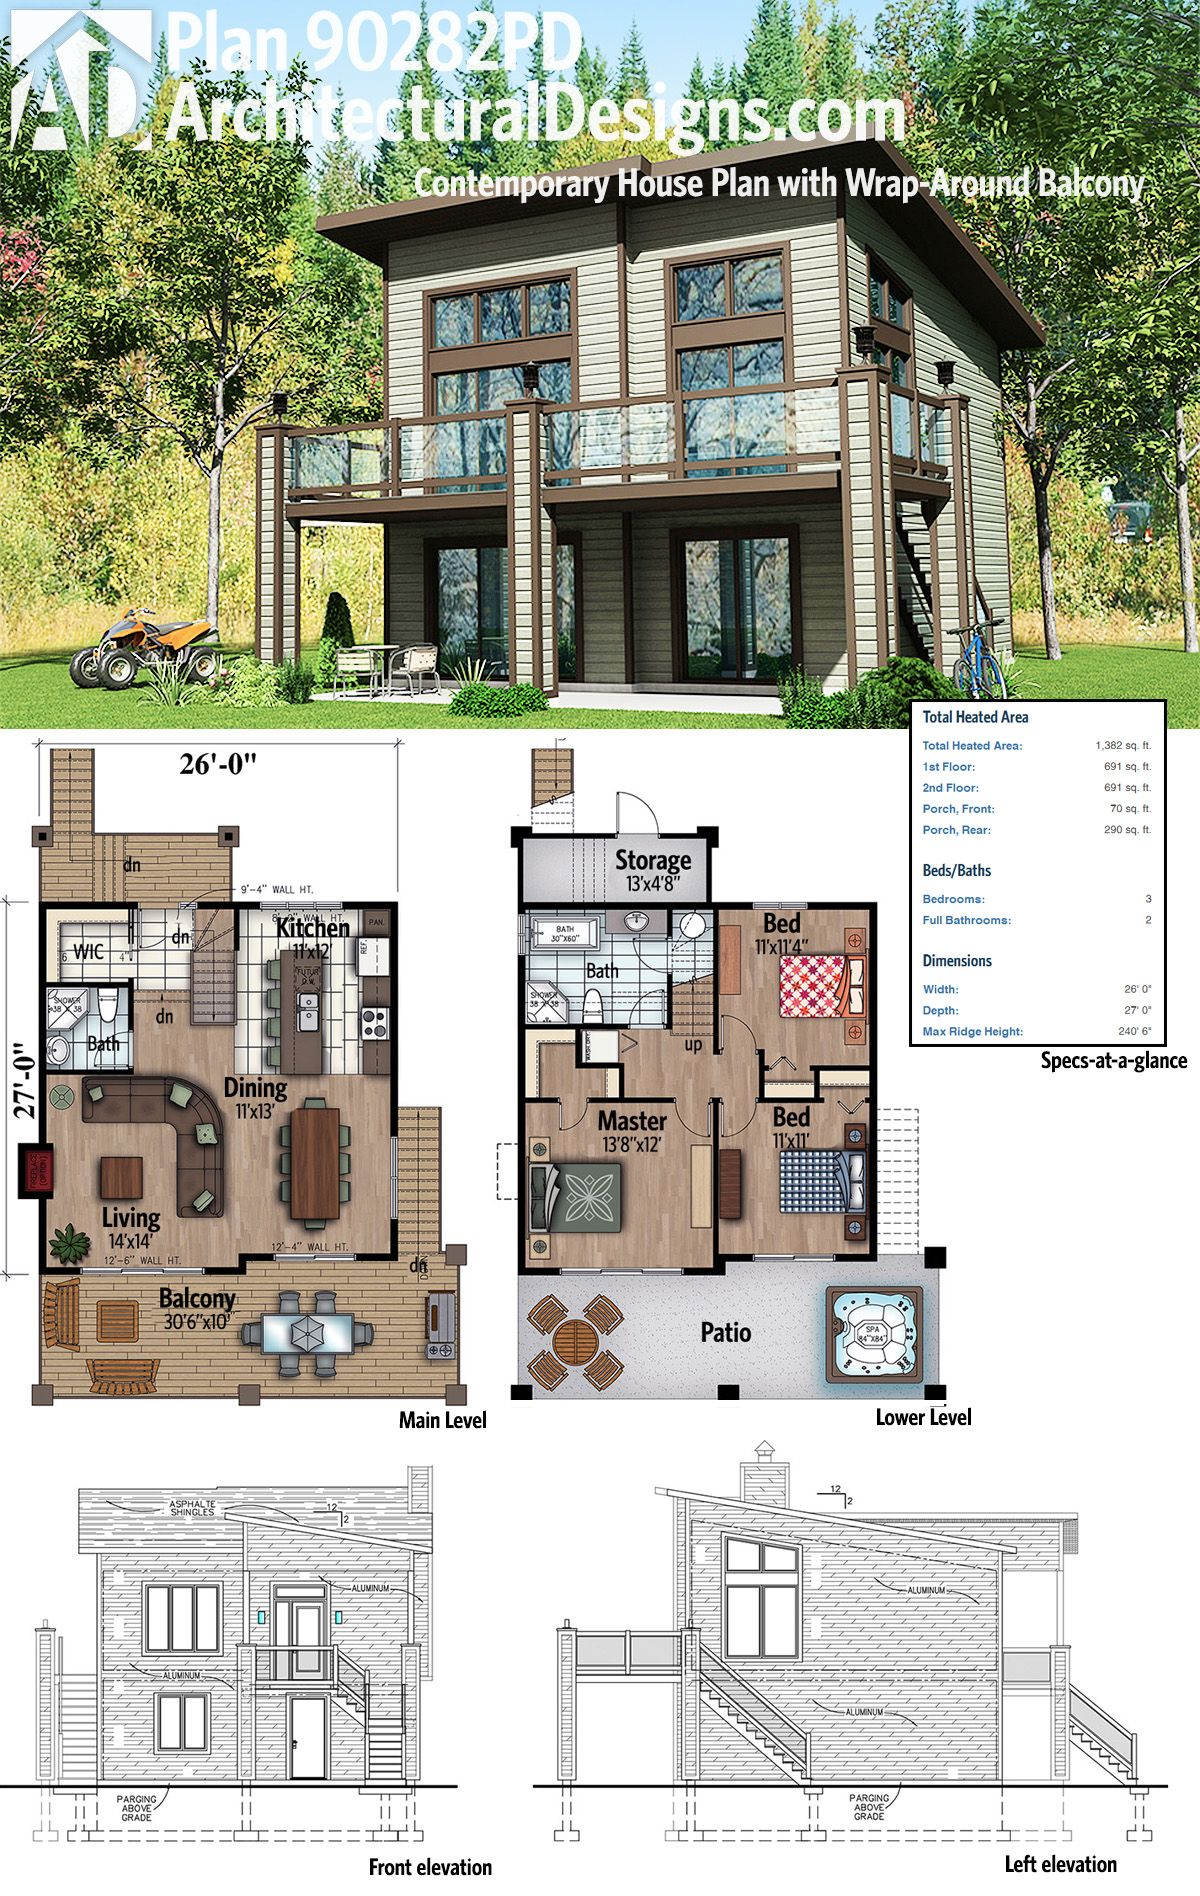 Plan 90282PD: Contemporary House Plan with Wrap-Around ... on mansion balcony, dormer balcony, house plans pdf, house plans 1500 to 1800, house plans from movies, italian balcony, house plans for 2015, house plans 4 bedrooms, house plans patio, house plans colonial style homes, house plans vaulted ceilings, house plans storage, house plans bathroom, house plans on pilings, house plans open floor plan, house plans second floor balcony, house plans for entertaining, london balcony, beach house balcony, log cabin plans with balcony,